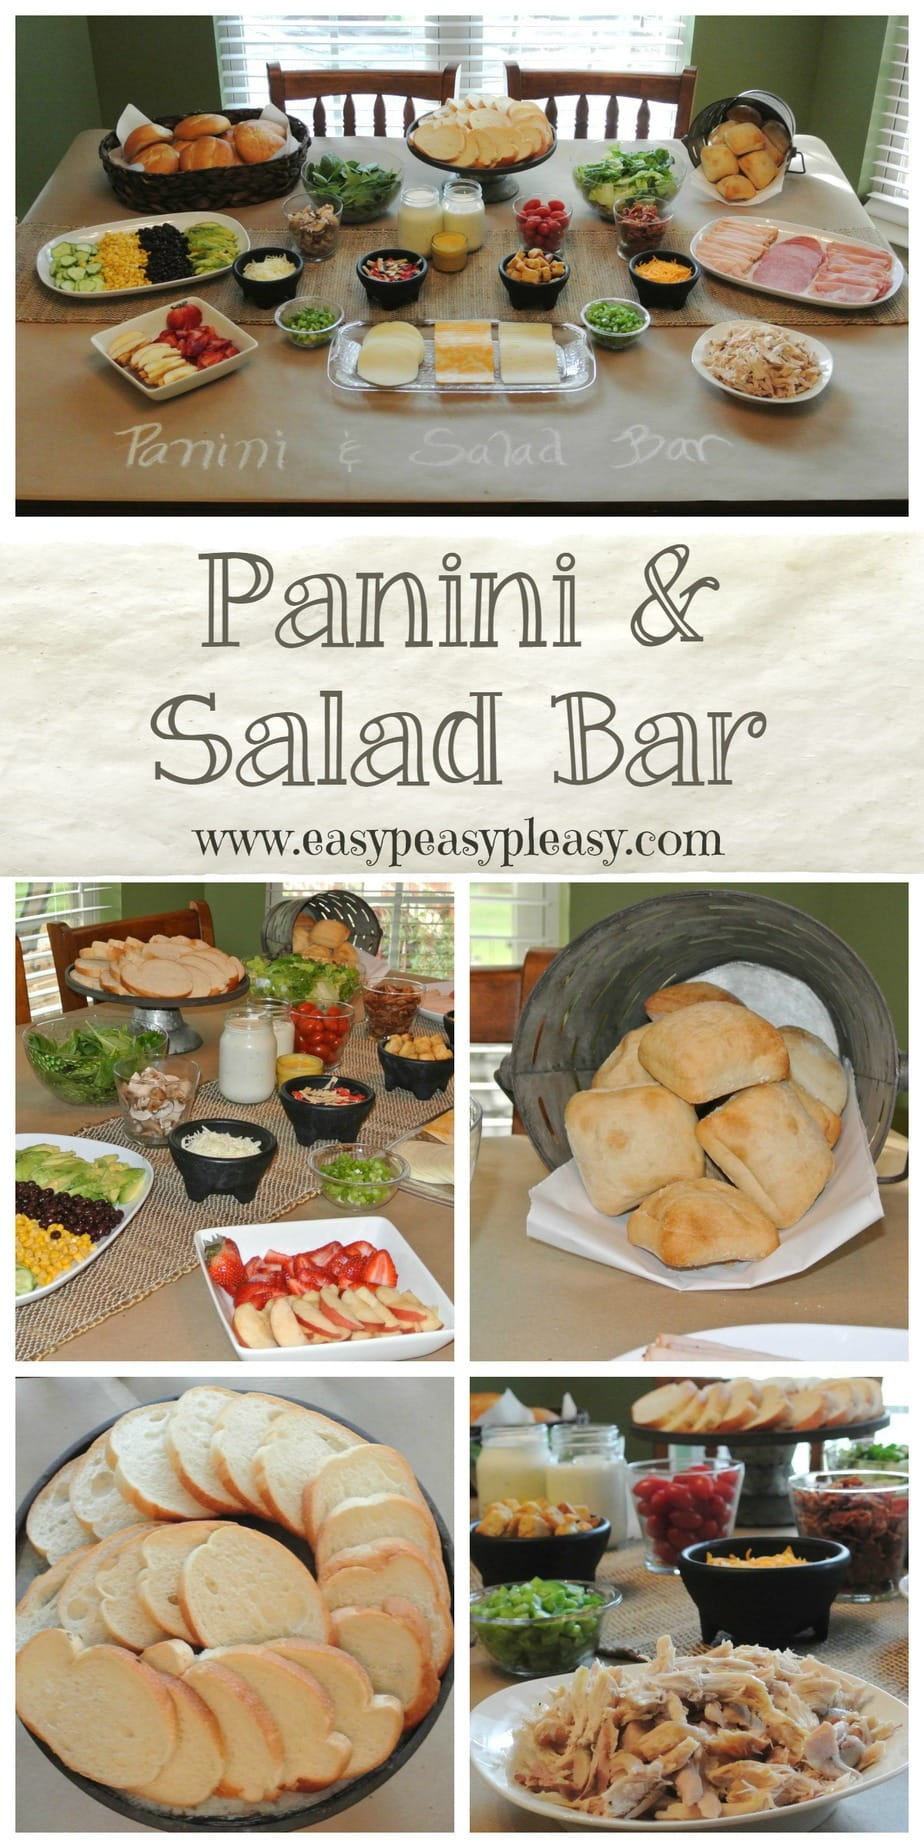 Make up a loaded salad or panini at your next gathering with this easy Panini Salad Bar.